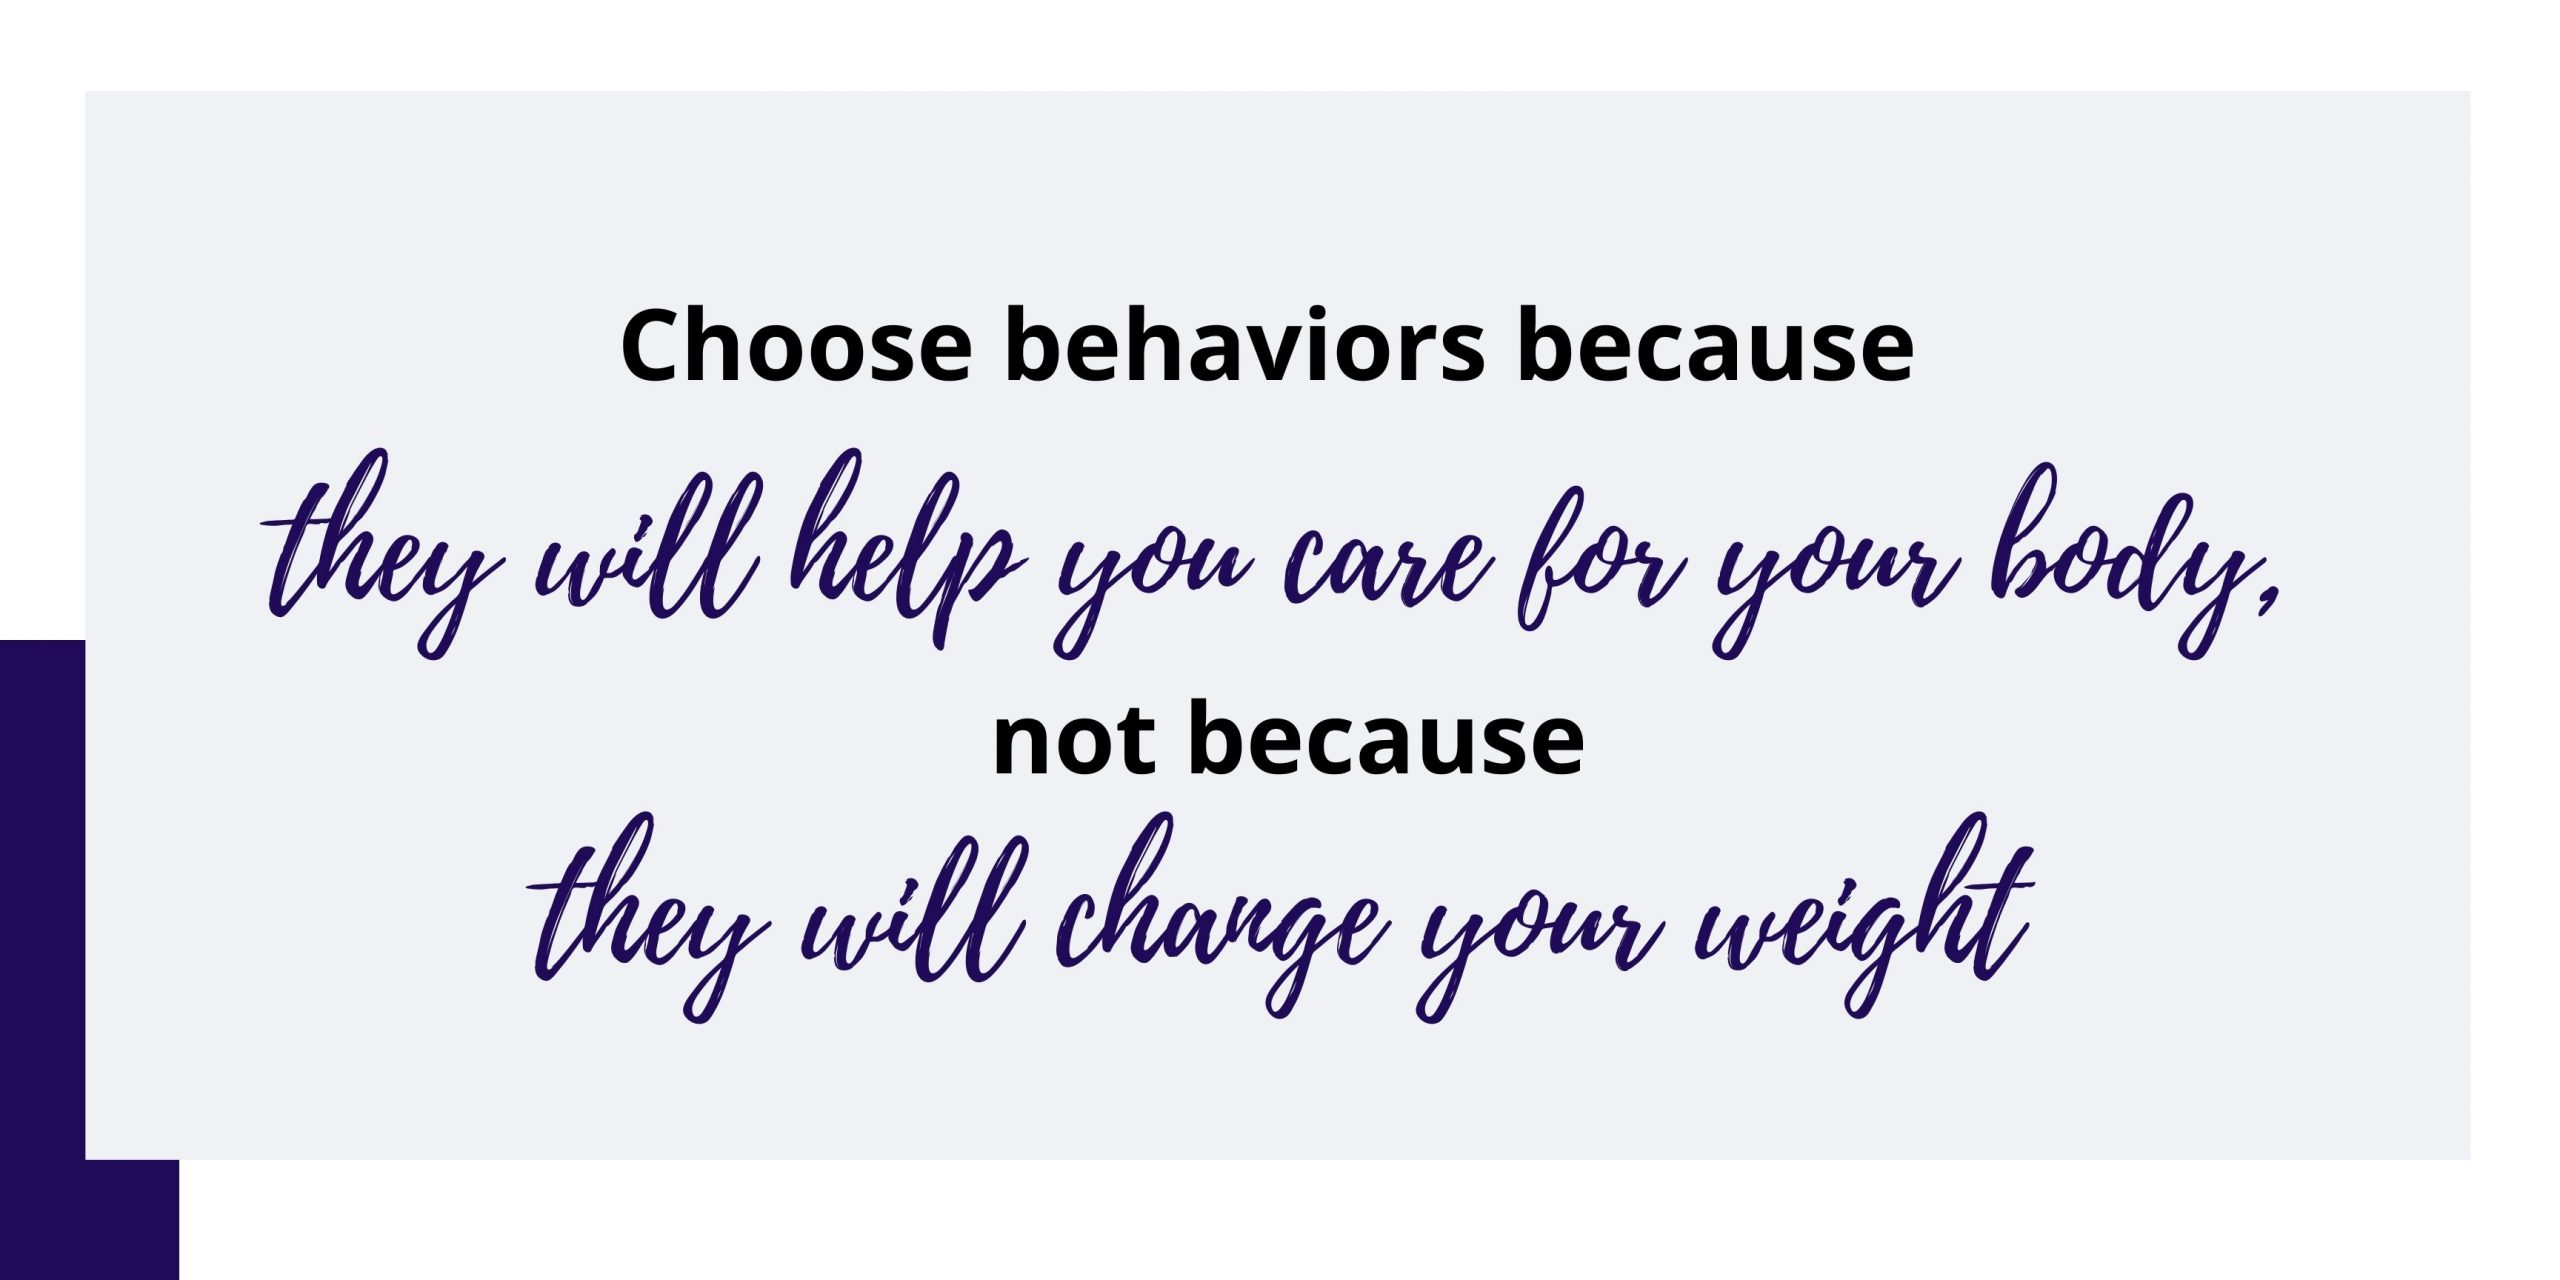 Choose behaviors because they will help you care for your body, not because they will change your weight